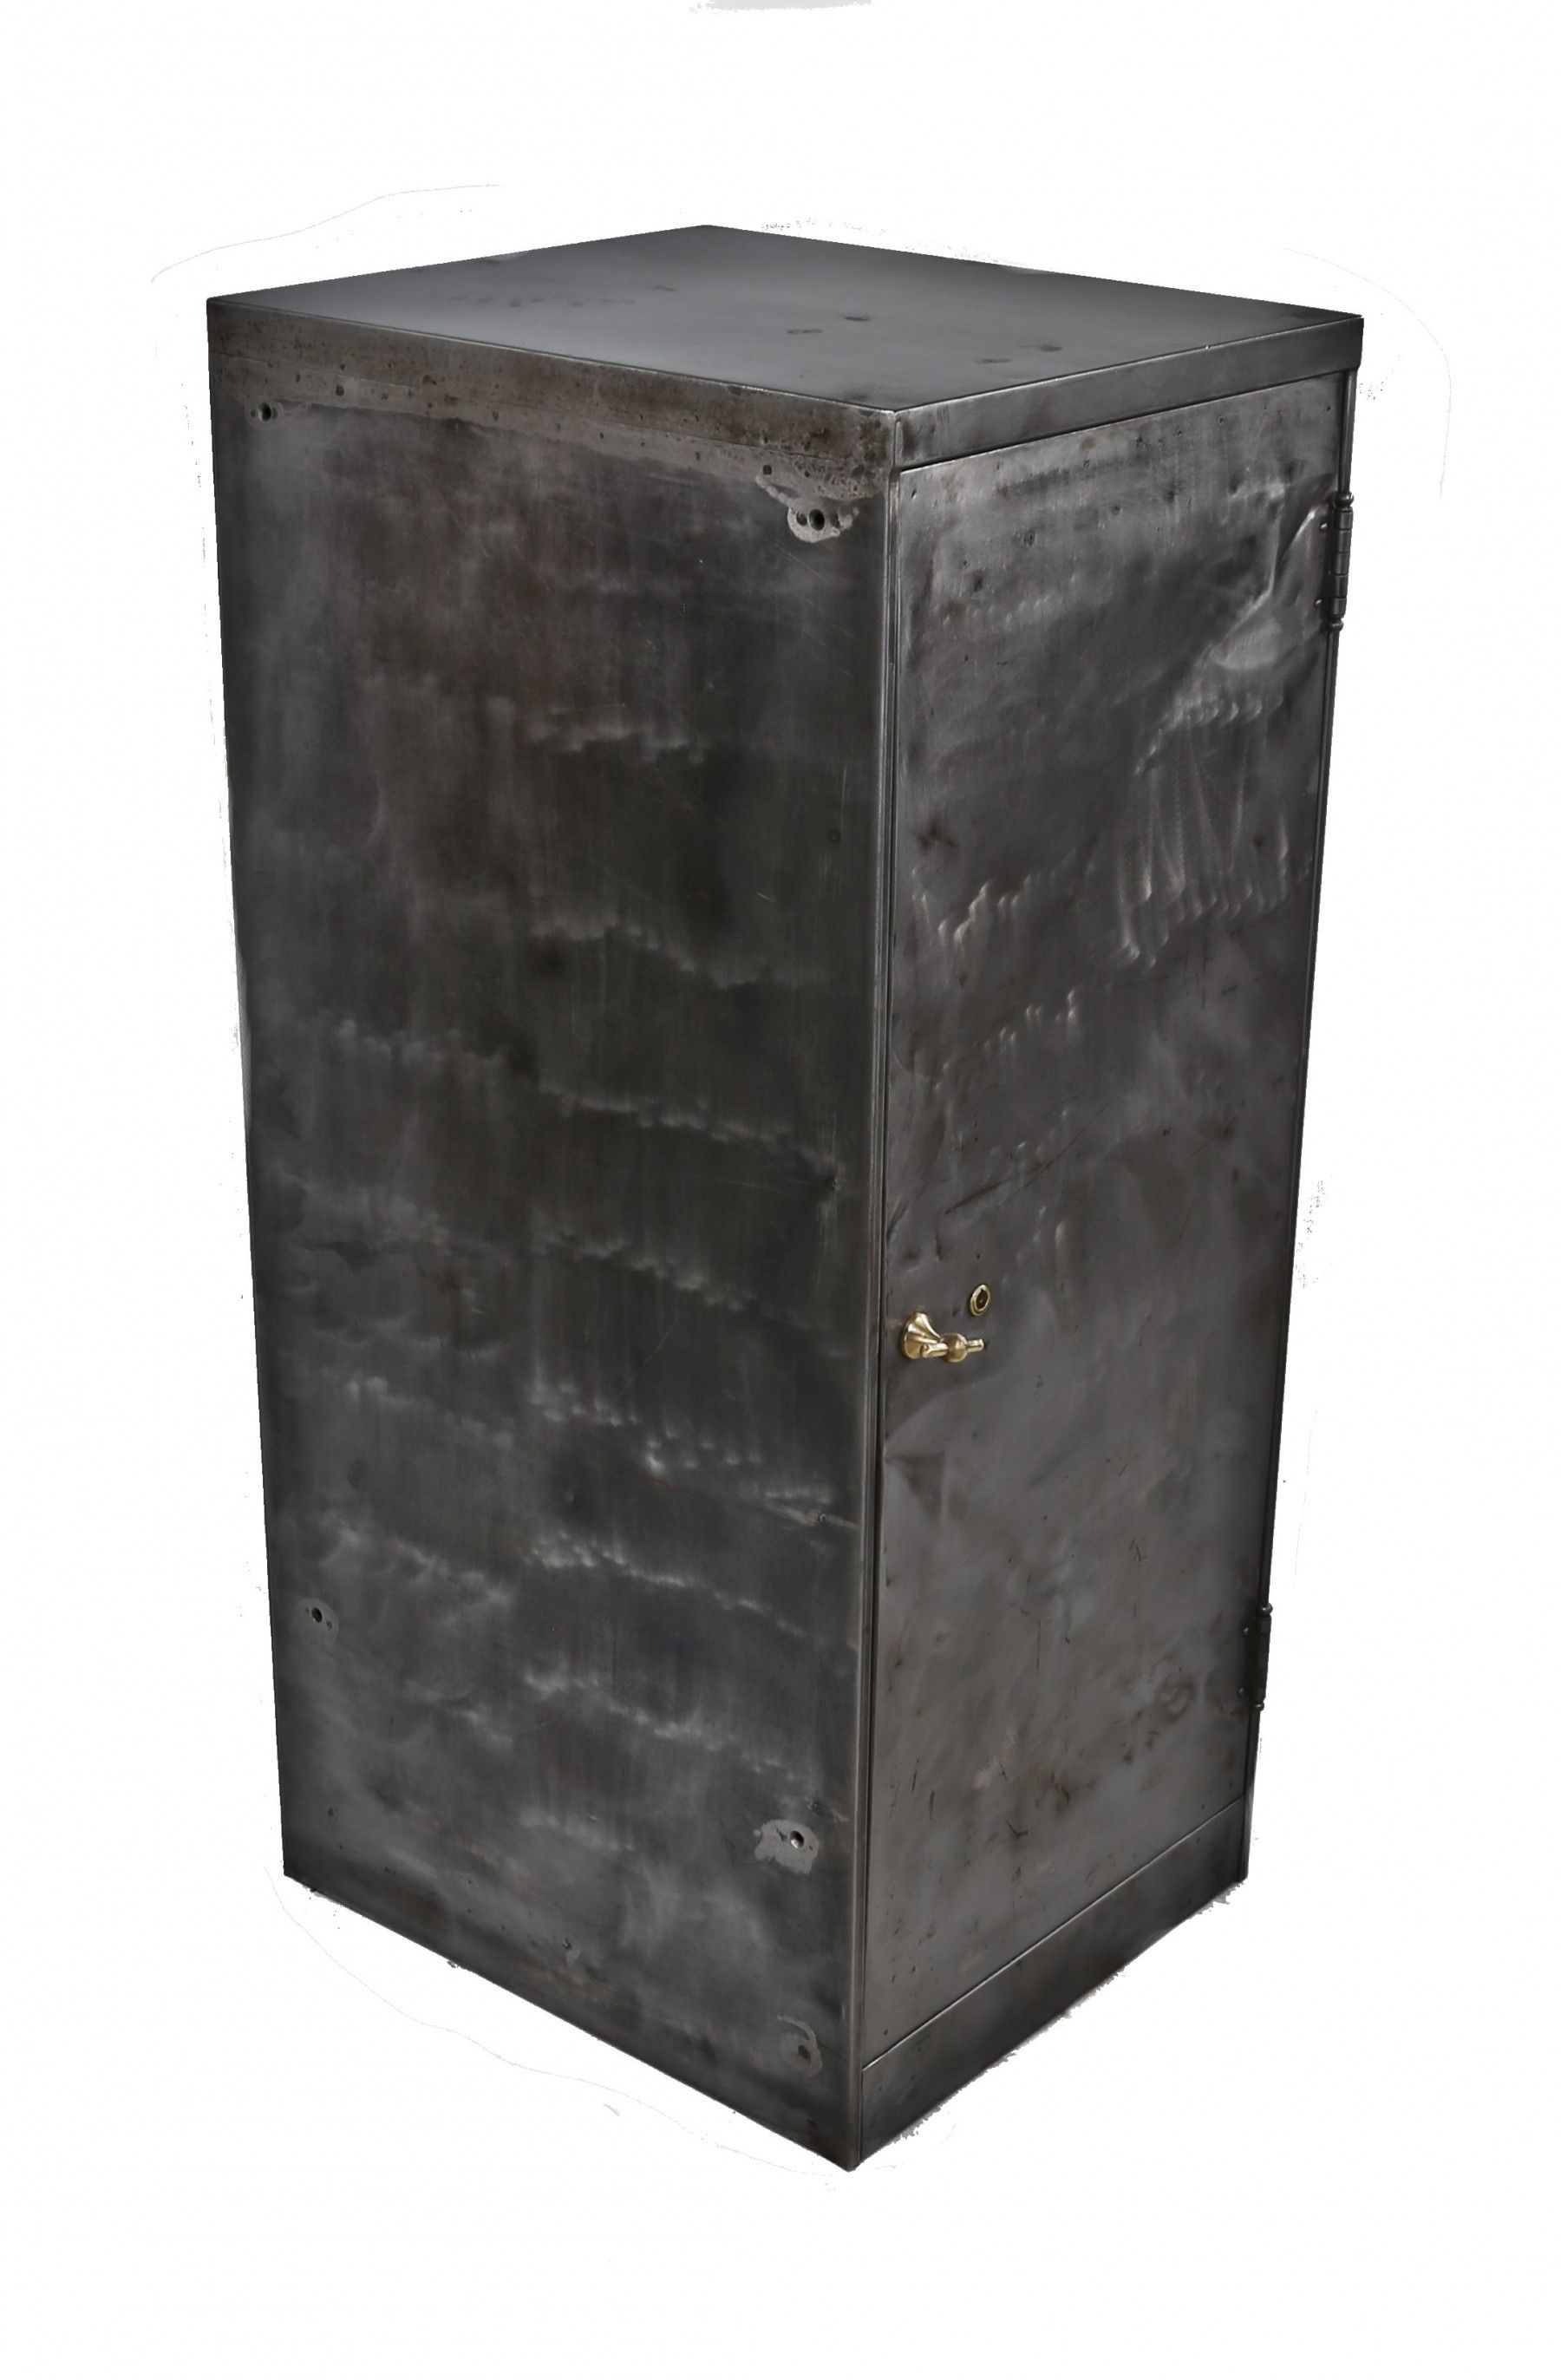 Oversized C 1920 S Refurbished American Antique Industrial Freestanding Single Door All Metal Lock Box Cabinet With Fanciful Cast Brass T Handle Single Doors American Antiques Metal Trunks